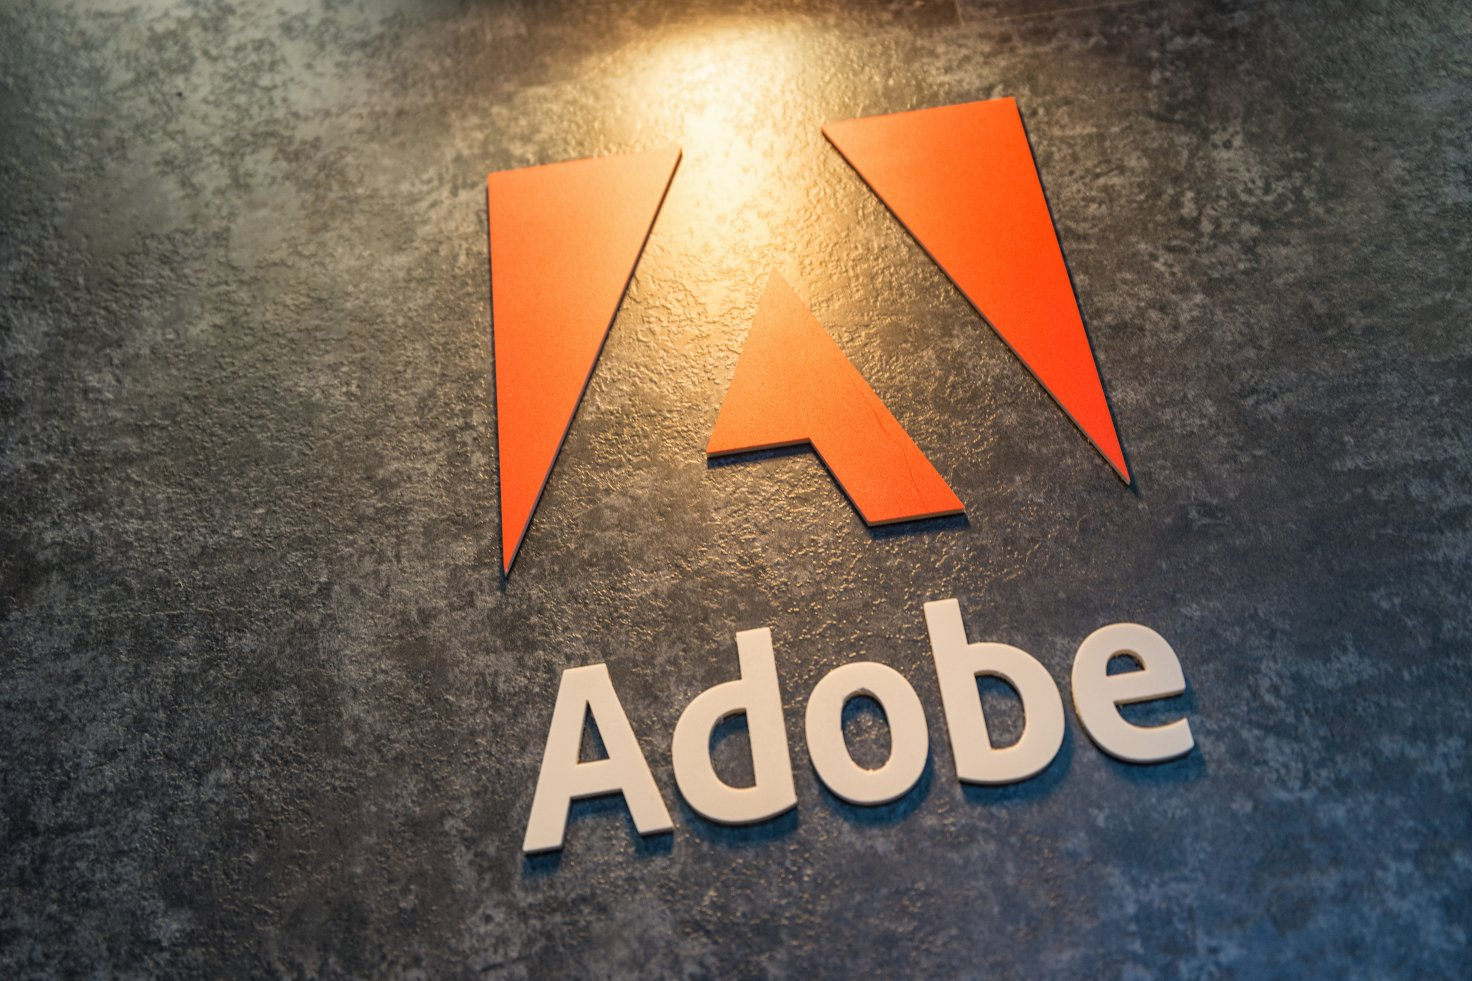 Adobe Share Price Forecast The Outlook For 2021 New Research Currency Com